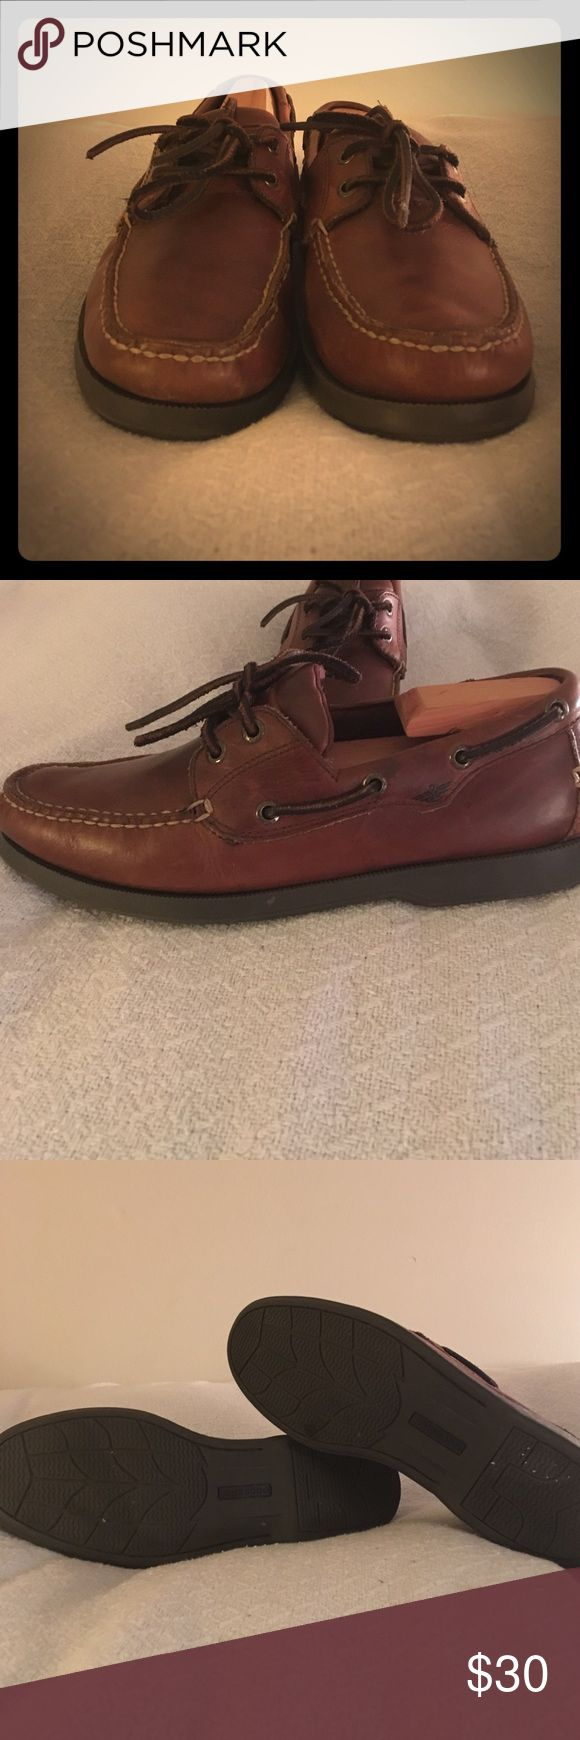 Dockers Leather Boat Shoe Leather boat shoes with a rubber sole by docker. They are a rich brown color. A little wear is apparent but otherwise in great shape. Very sturdy soles with great tread still left intact Dockers Shoes Boat Shoes